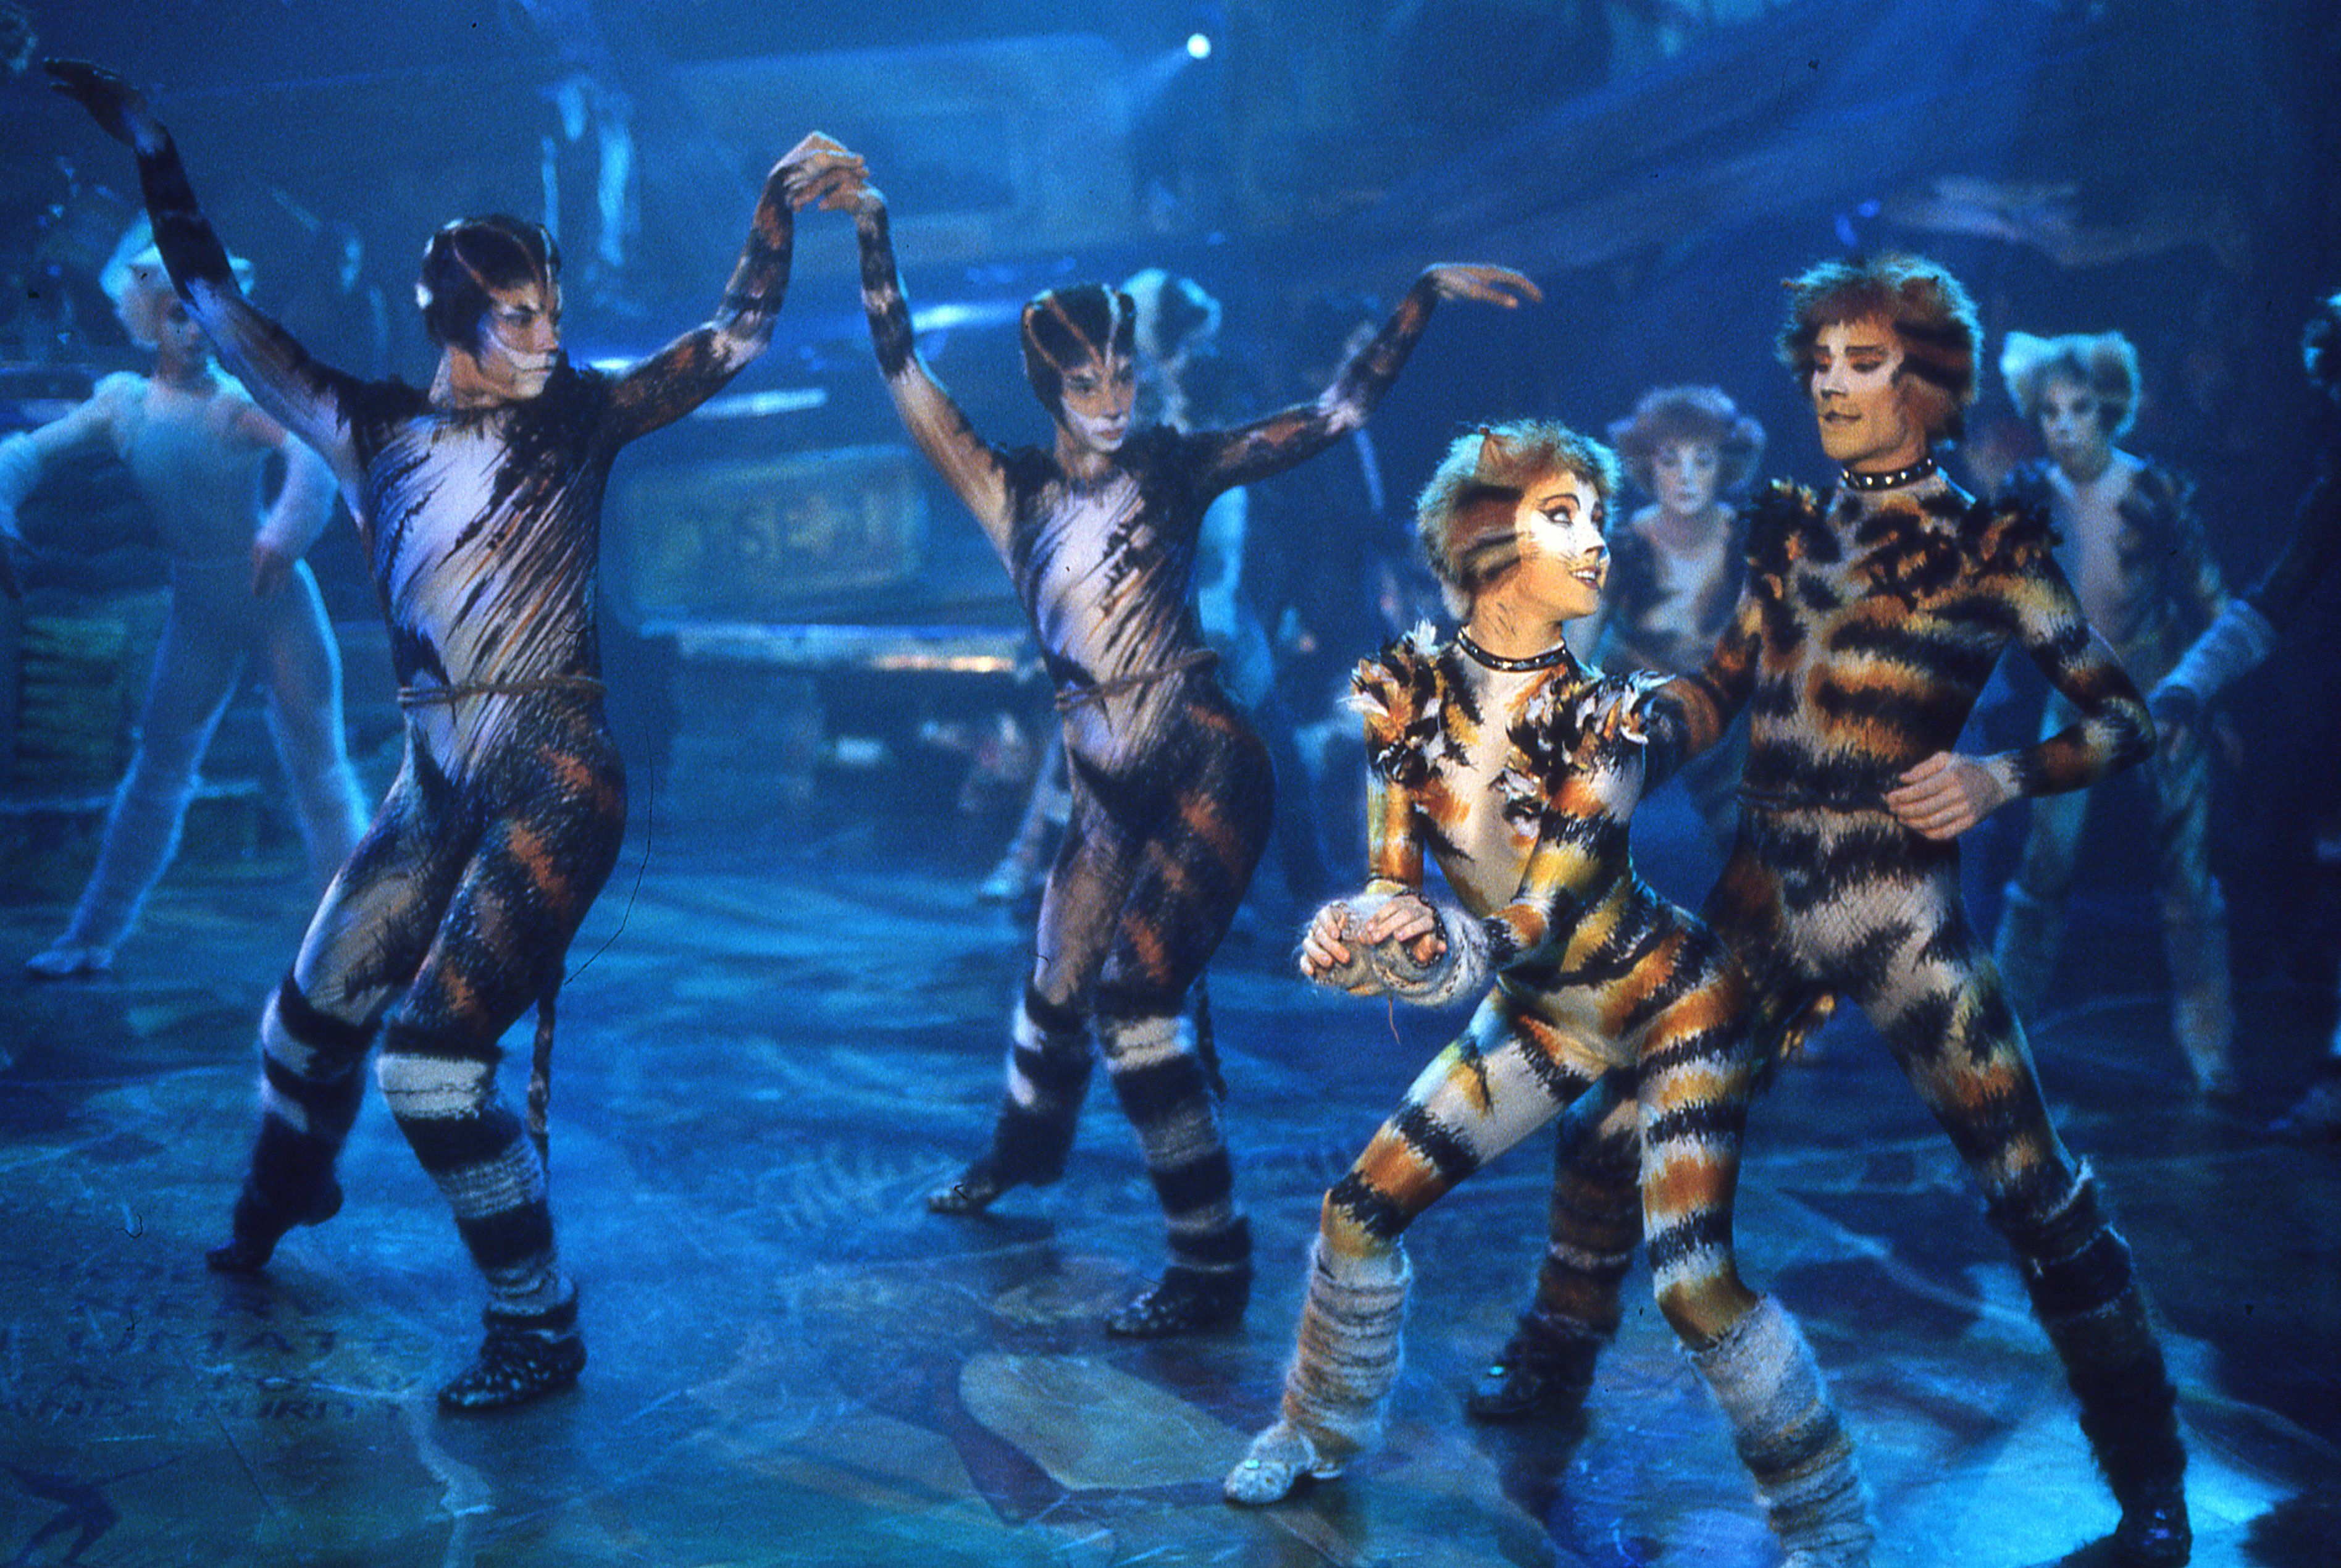 Cats On Screen Cats The Musical Jellicle Cats Cat Movie Musicals